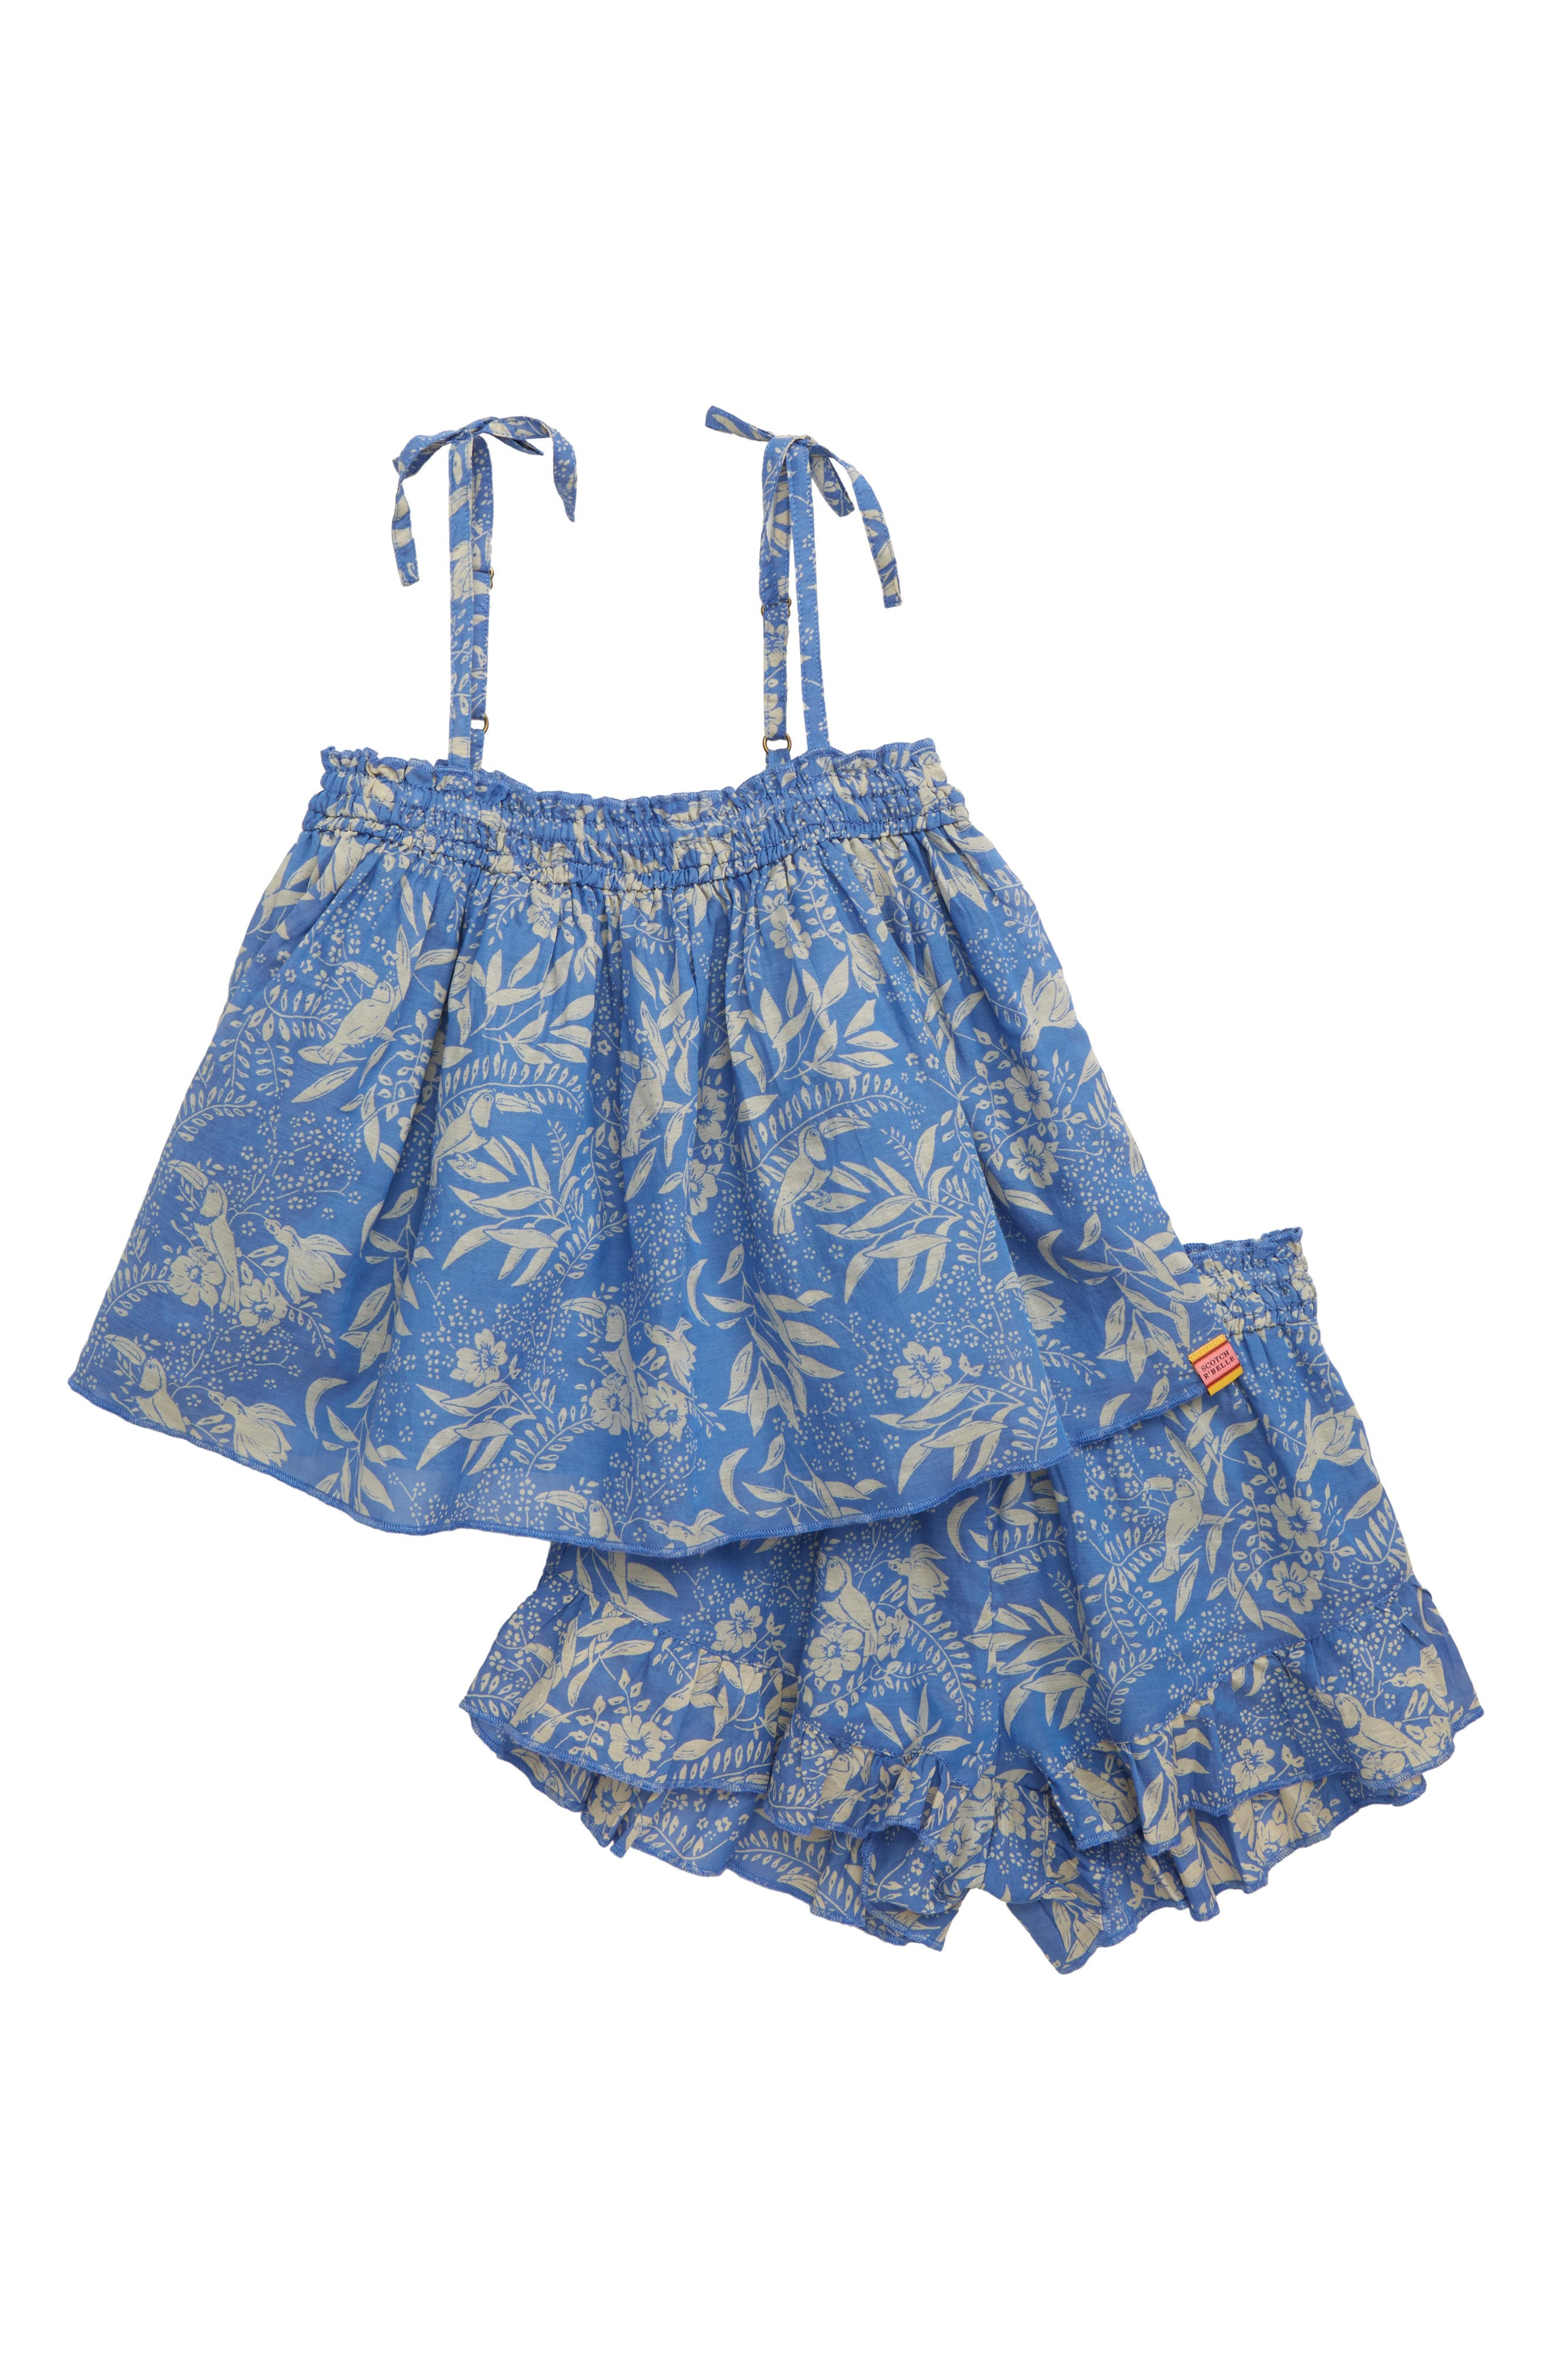 SCOTCH R'BELLE, Print Trapeze Top & Shorts Set, Main thumbnail 1, color, 603 X BLUE